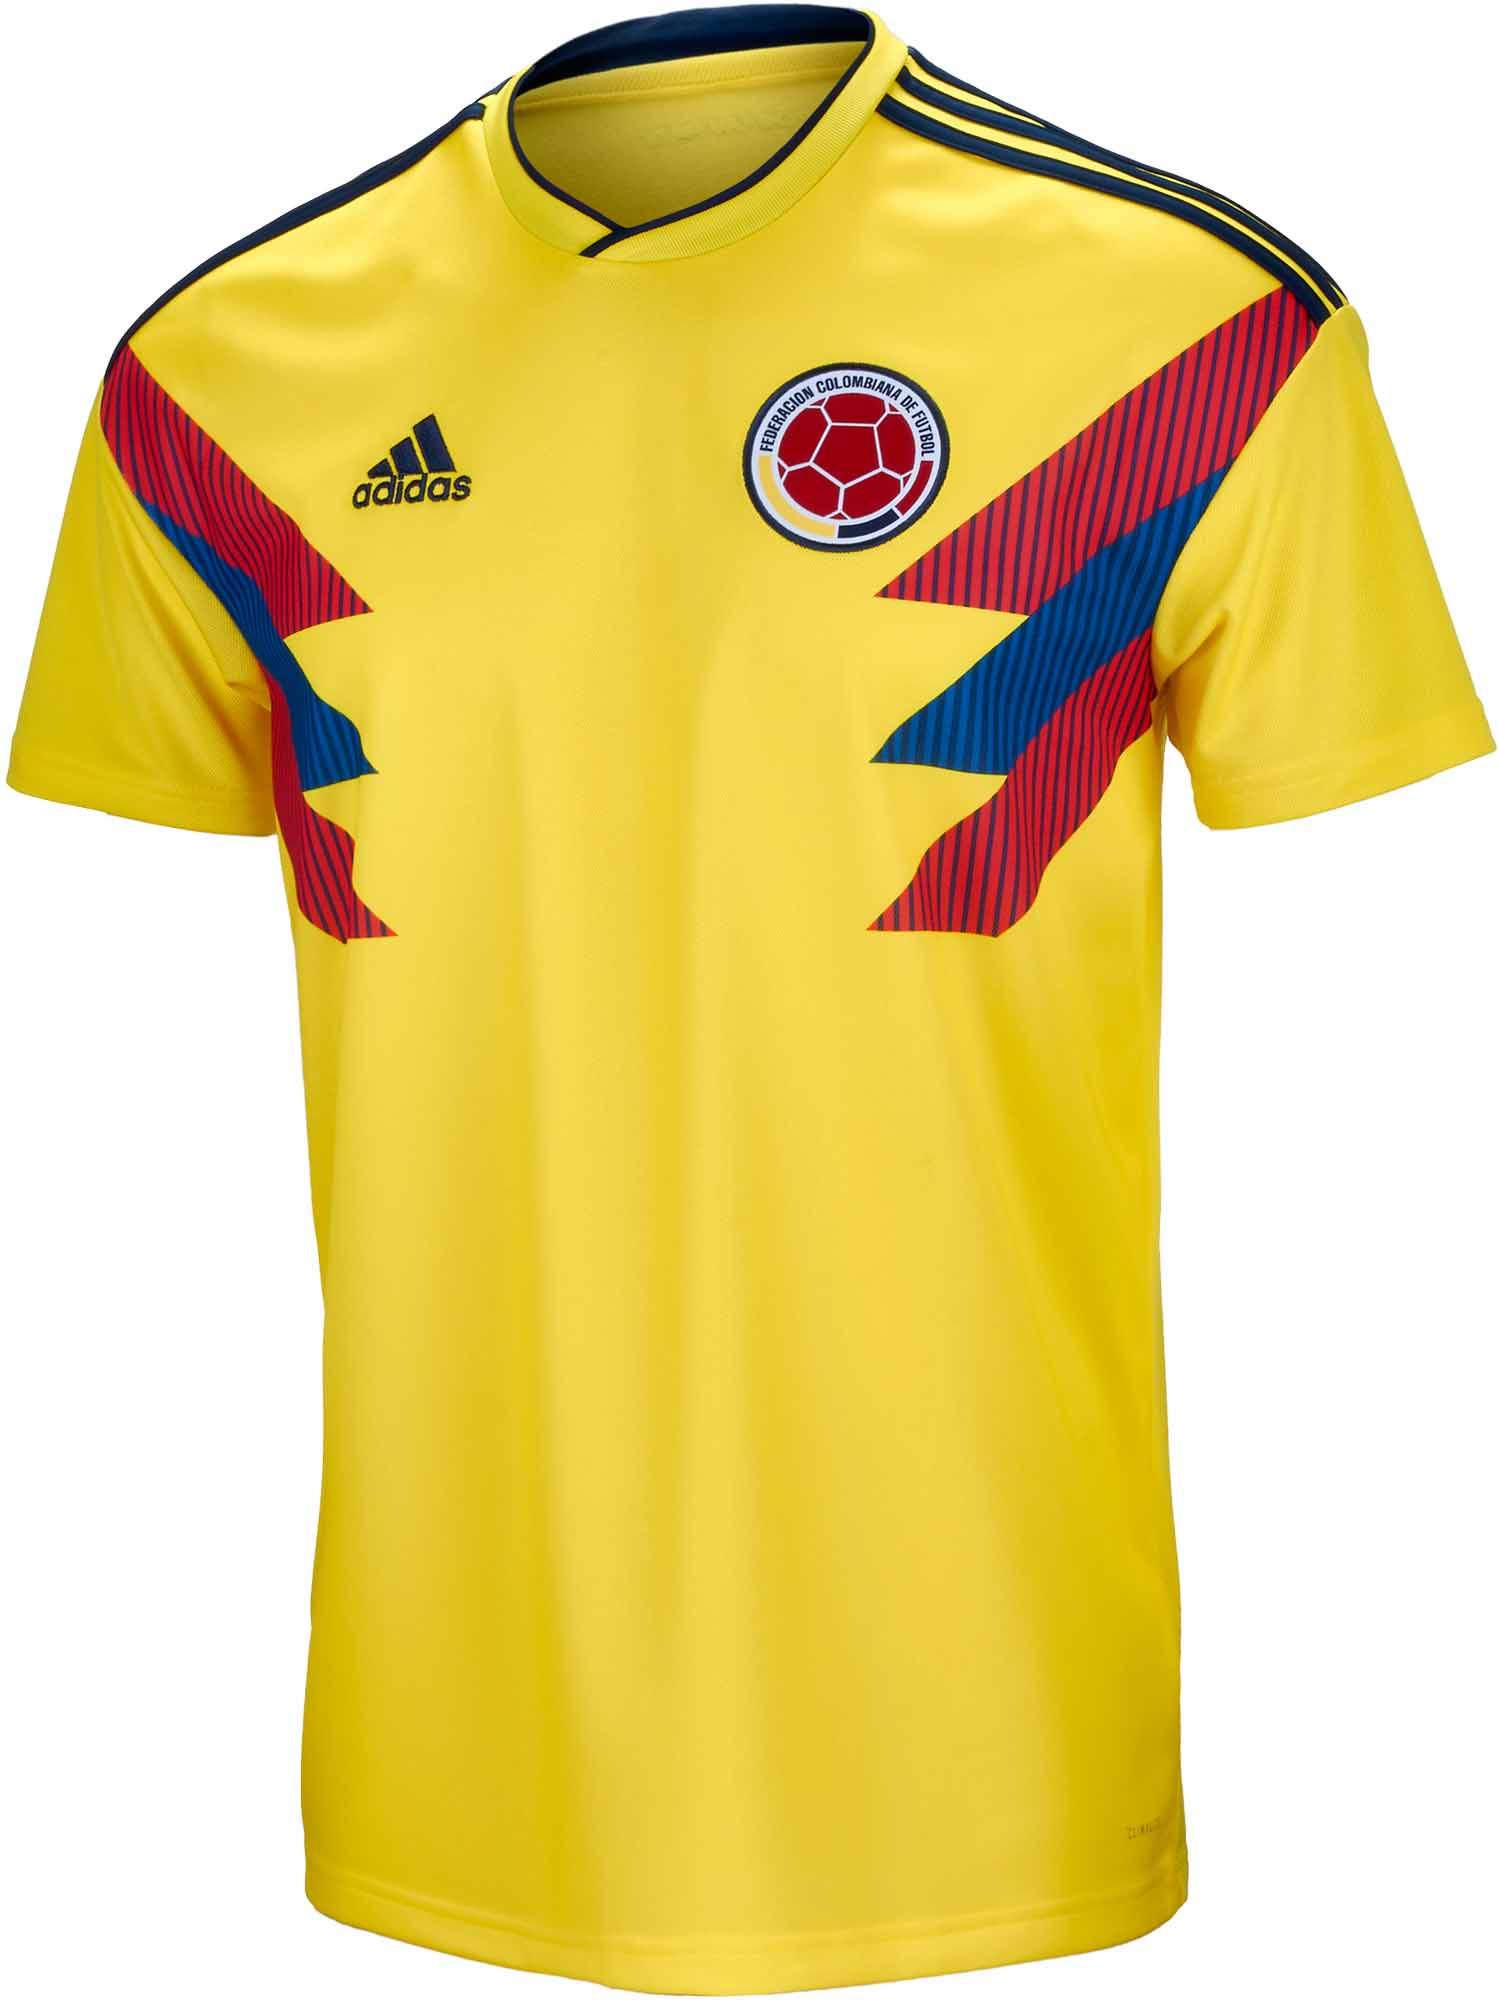 brand new 51549 213d8 2018/19 adidas Colombia Home Jersey